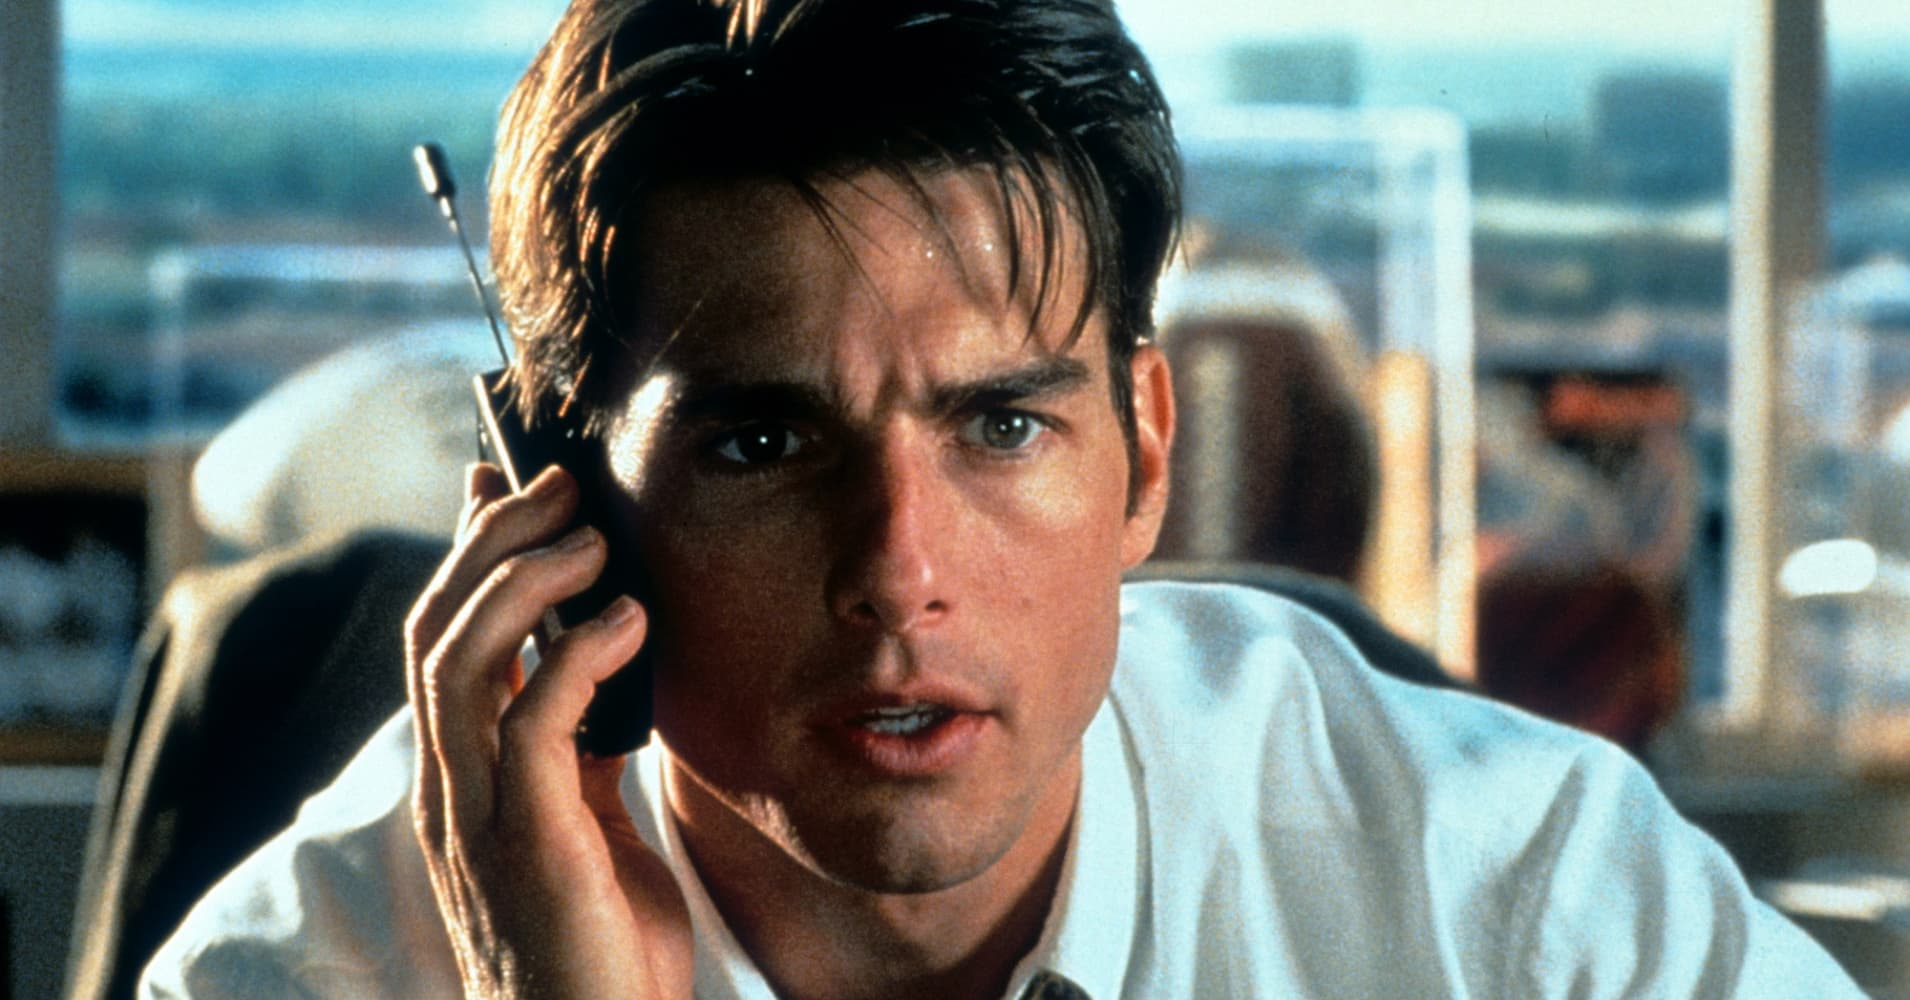 Tom Cruise talks on a phone in a scene from 'Jerry Maguire,' a film in which his character is fired from a job at a sports management agency.